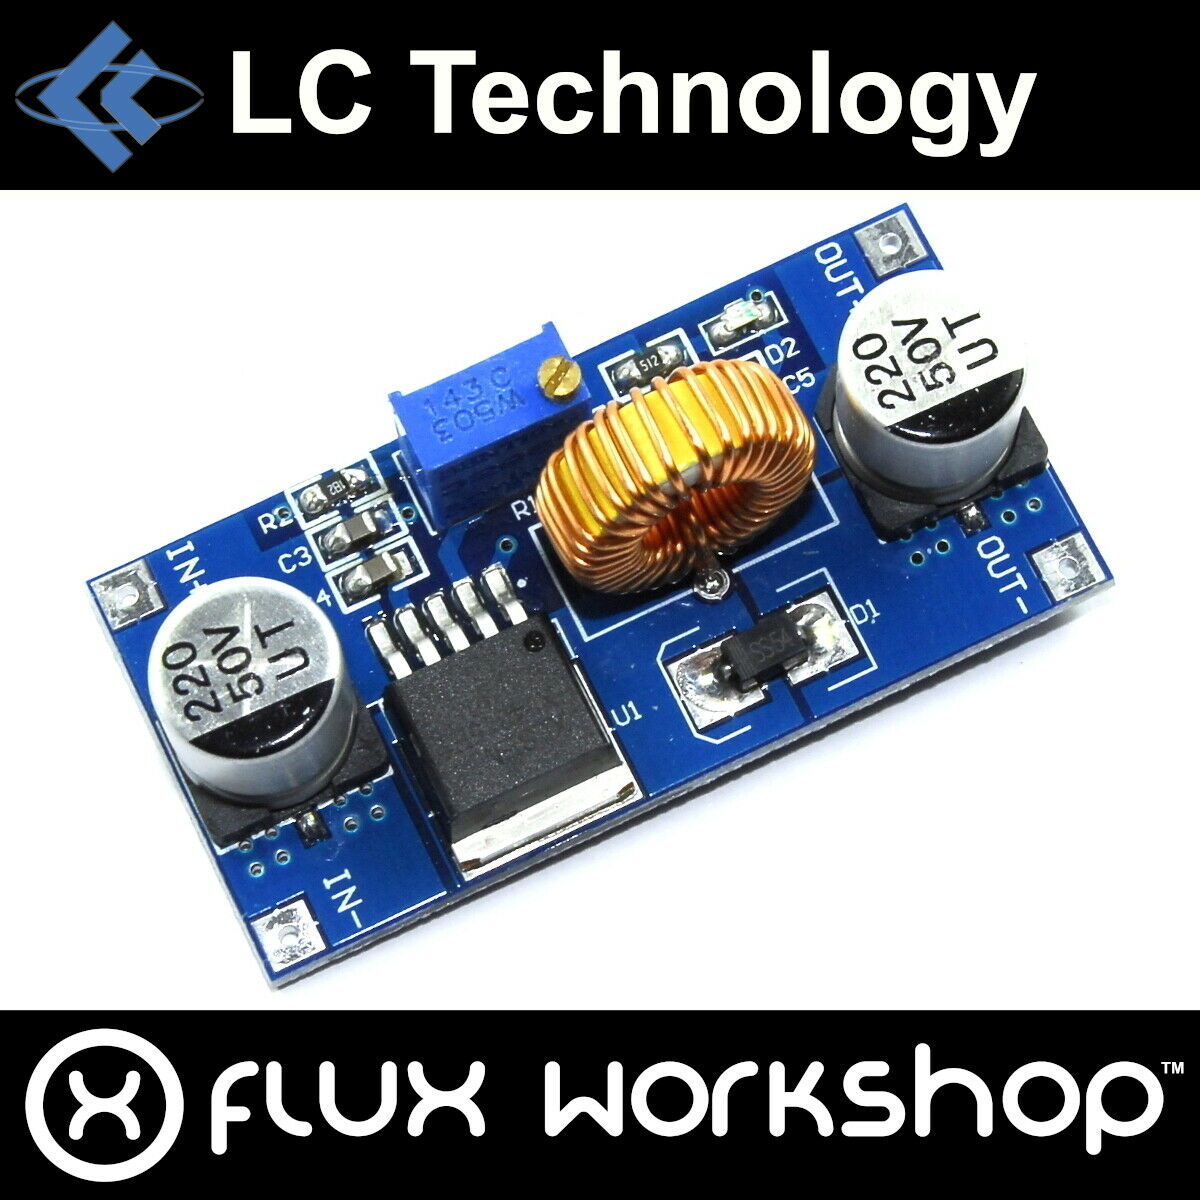 Lc Technology Xl4015 Step Down Adjustable Supply Dc 5v 36v Flux 5a Workshop 1 Of 2only 5 Available